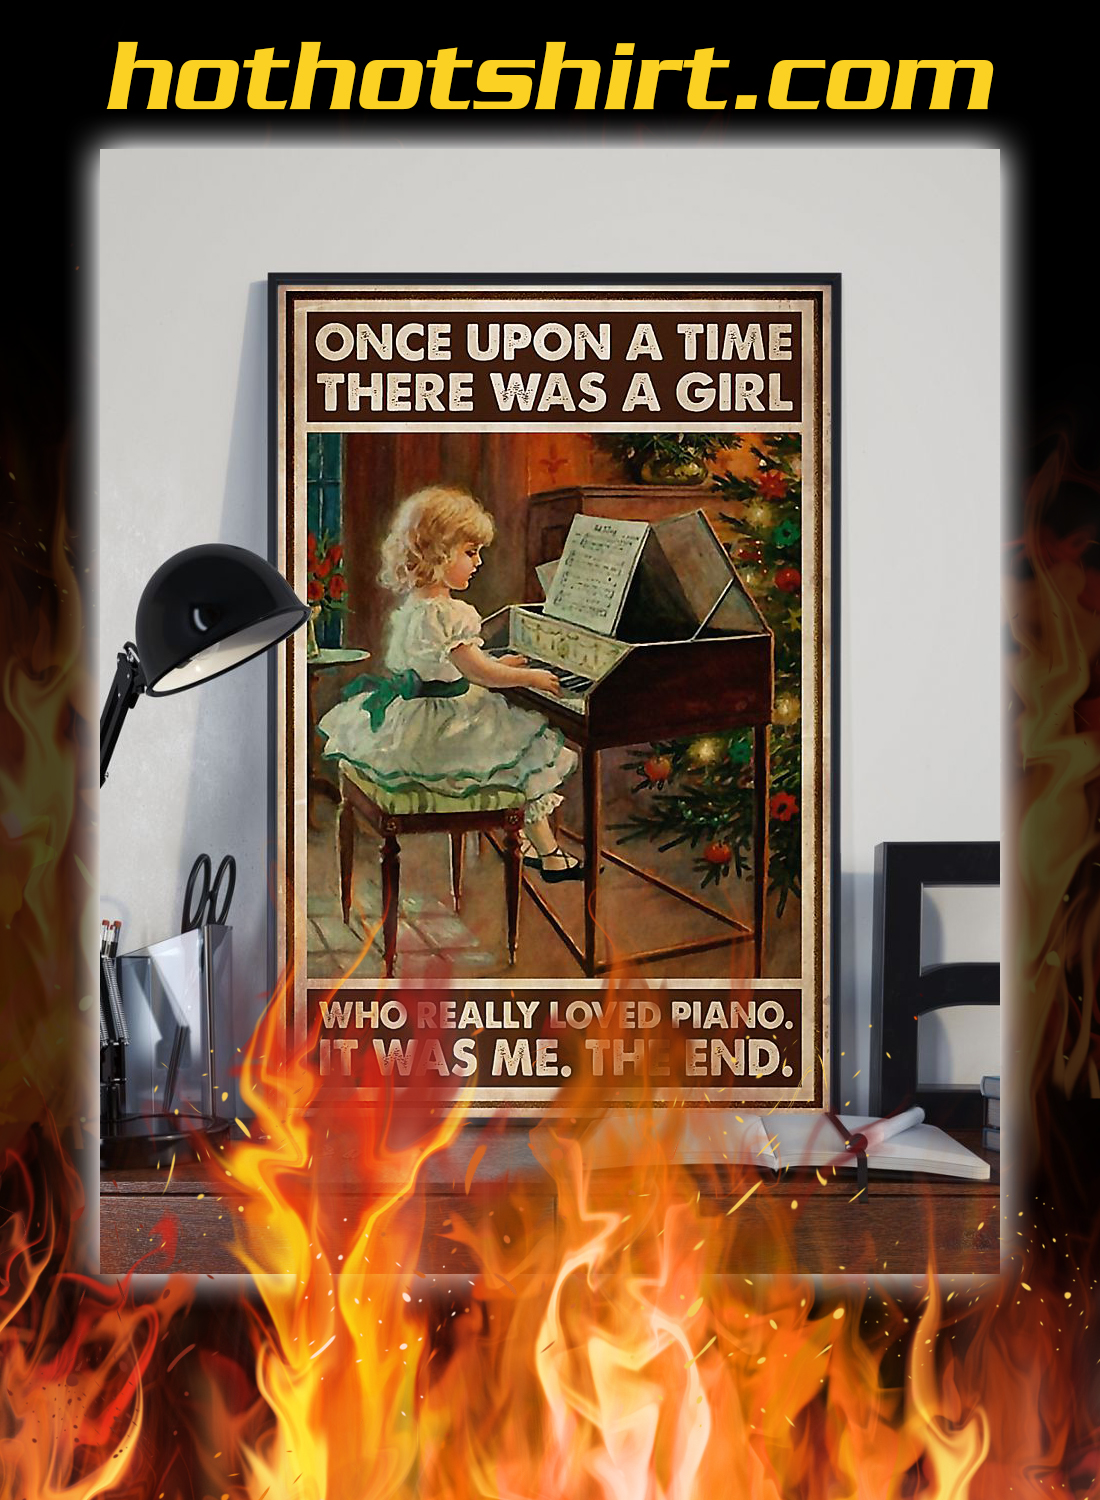 There was a girl who really loved piano poster 2